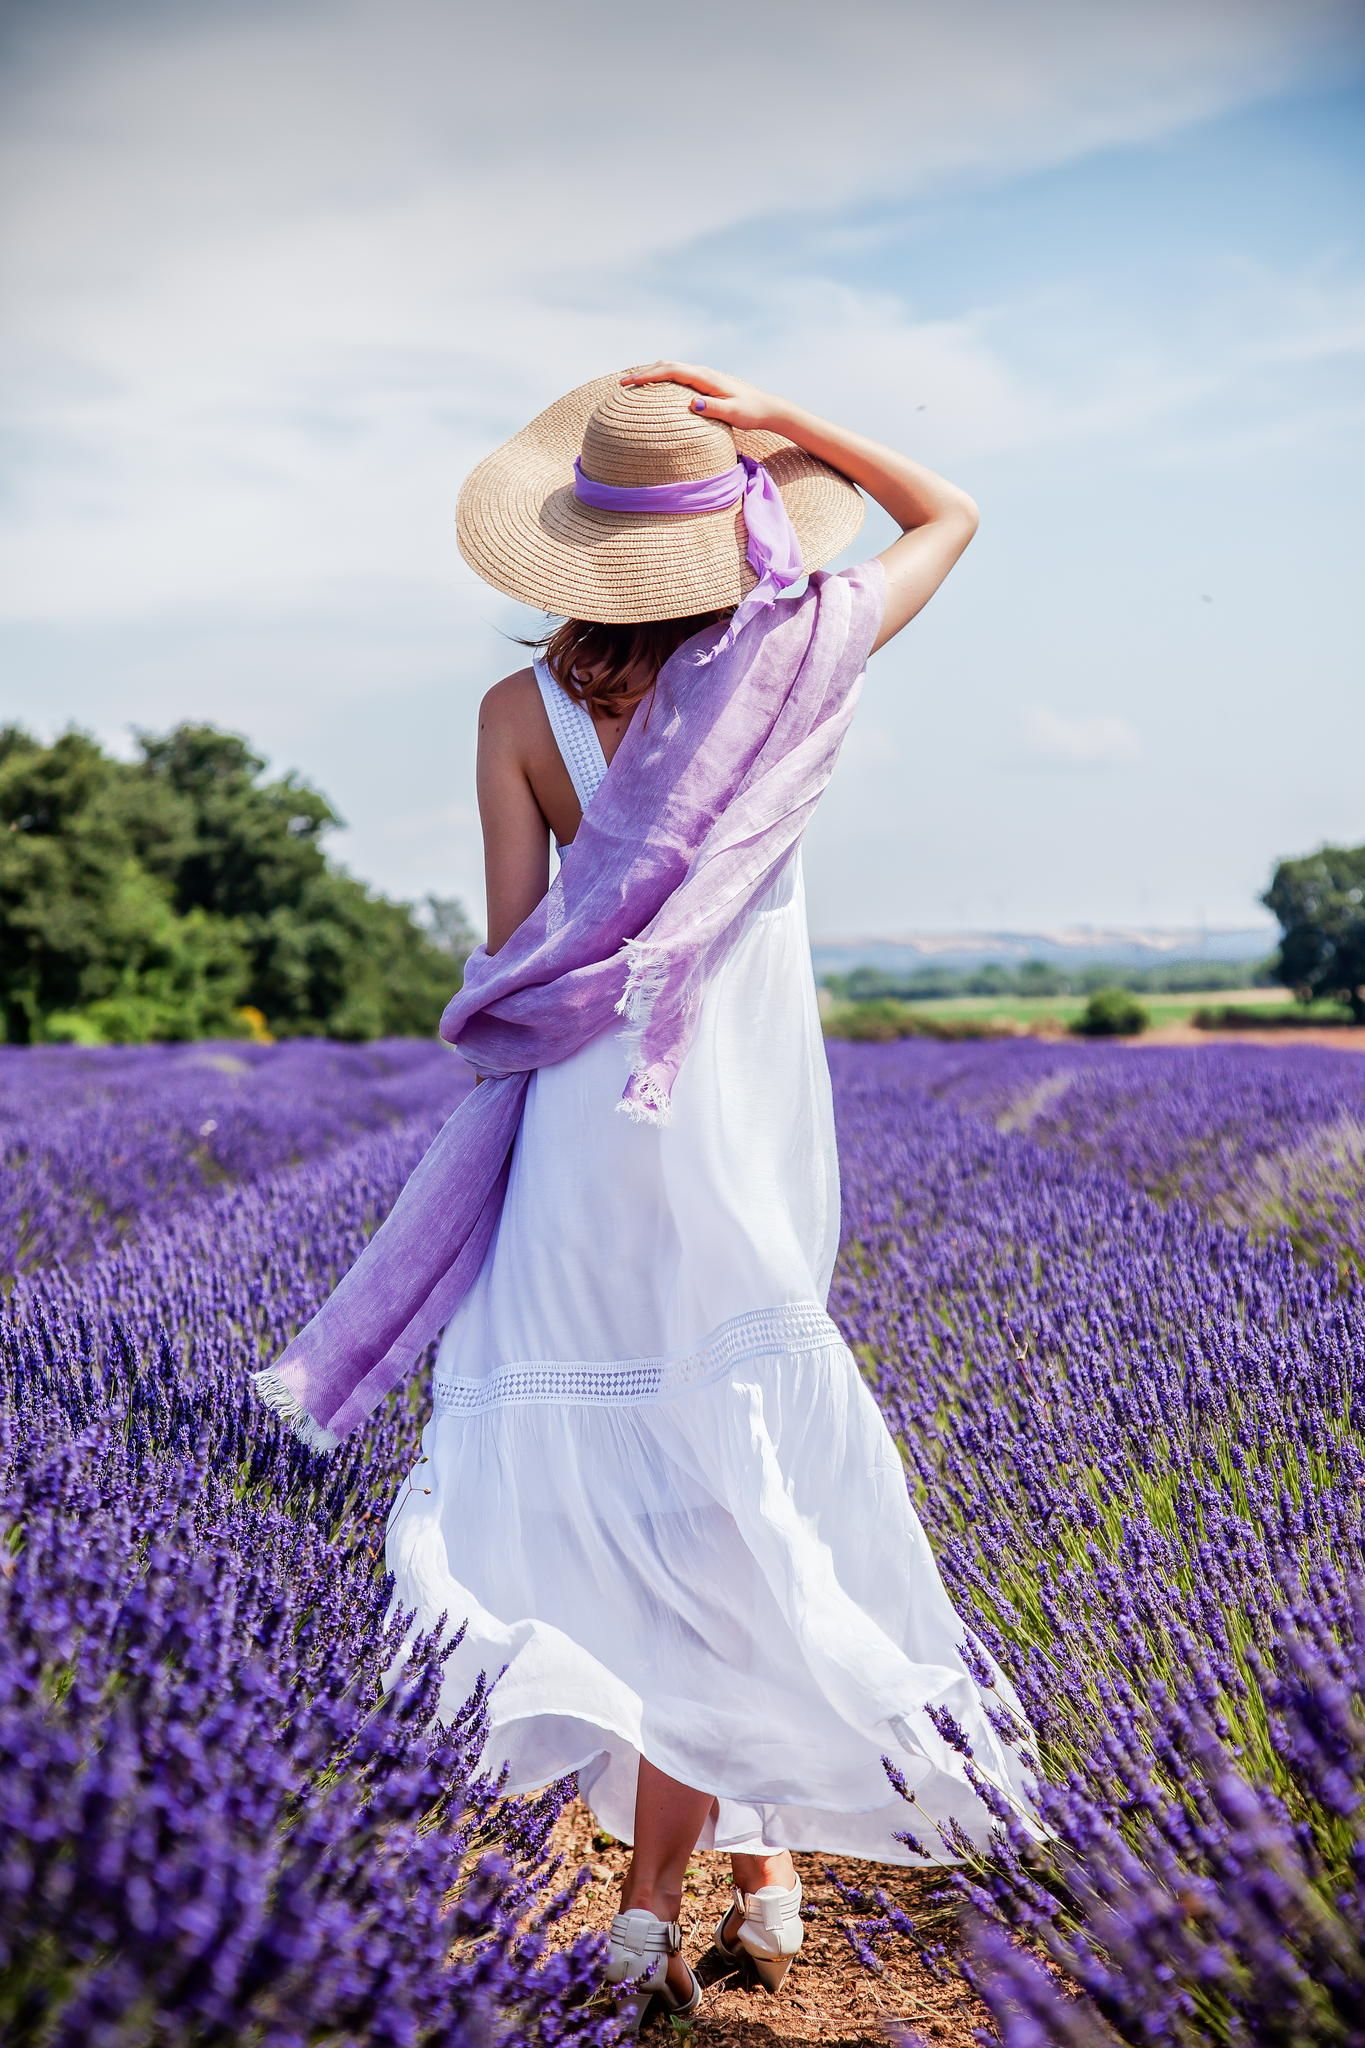 Patricia and Lavender in Italy by Marco Ravenna on 500px   Надо ... 694e032666a